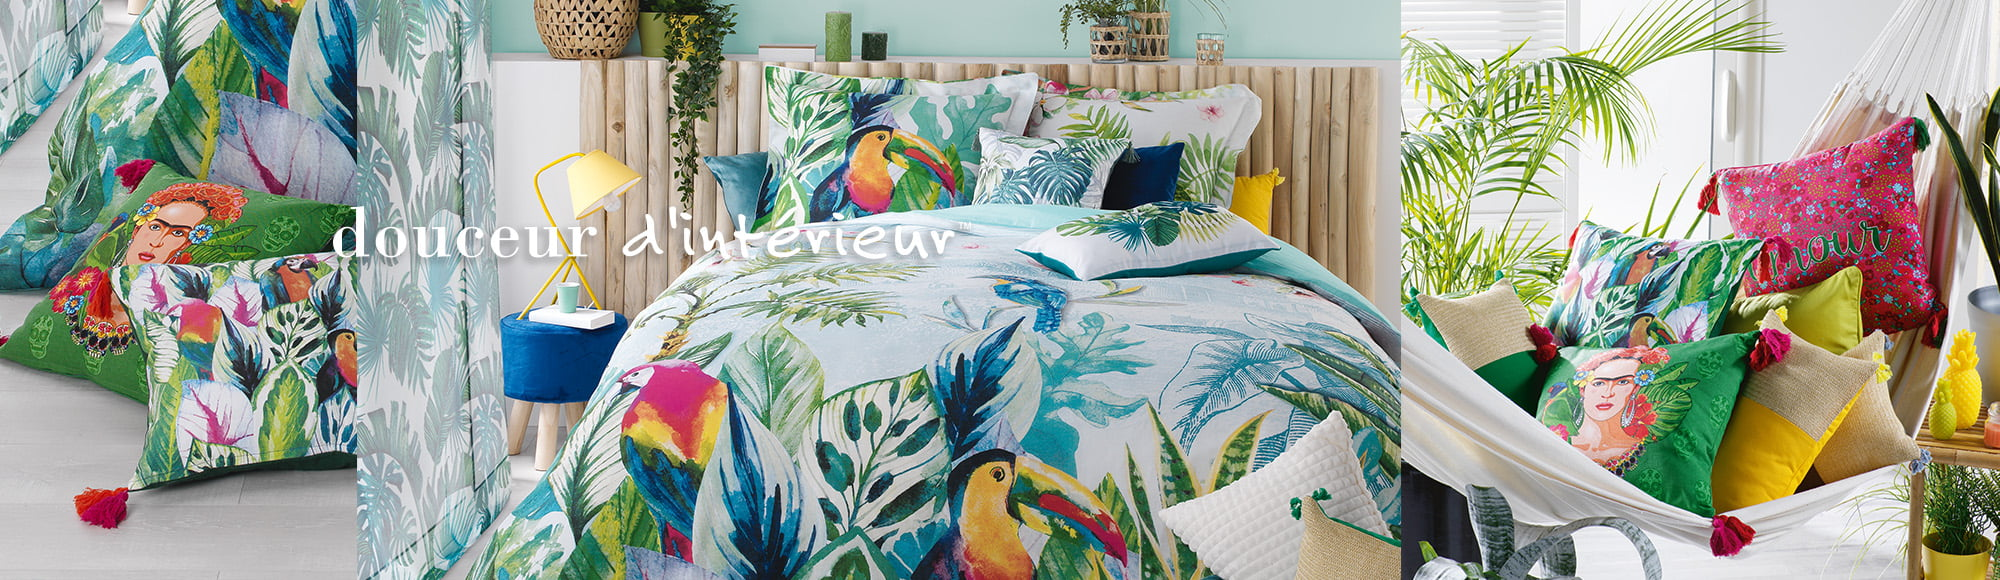 U10 - interior decoration supplier - douceur d interieur - bed linen soft furnishing decoration - jardin exotique collection